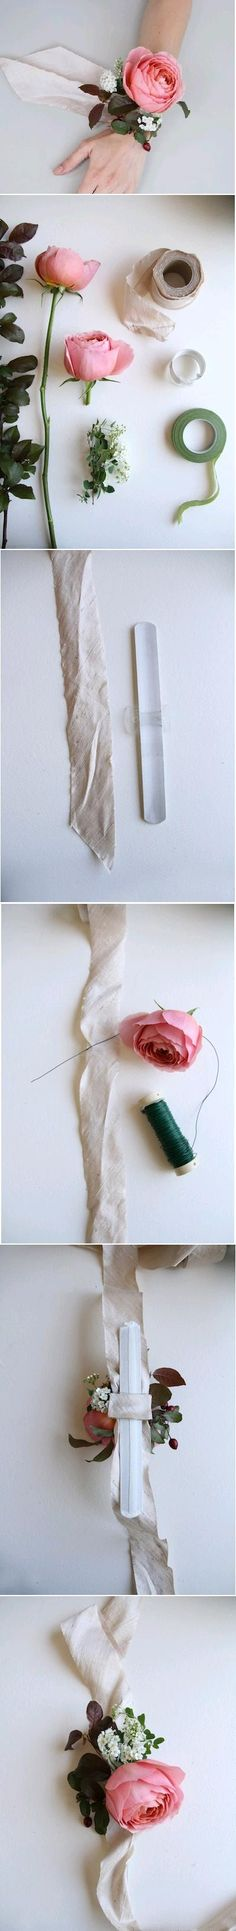 DIY Wedding Wrist Flower DIY Projects